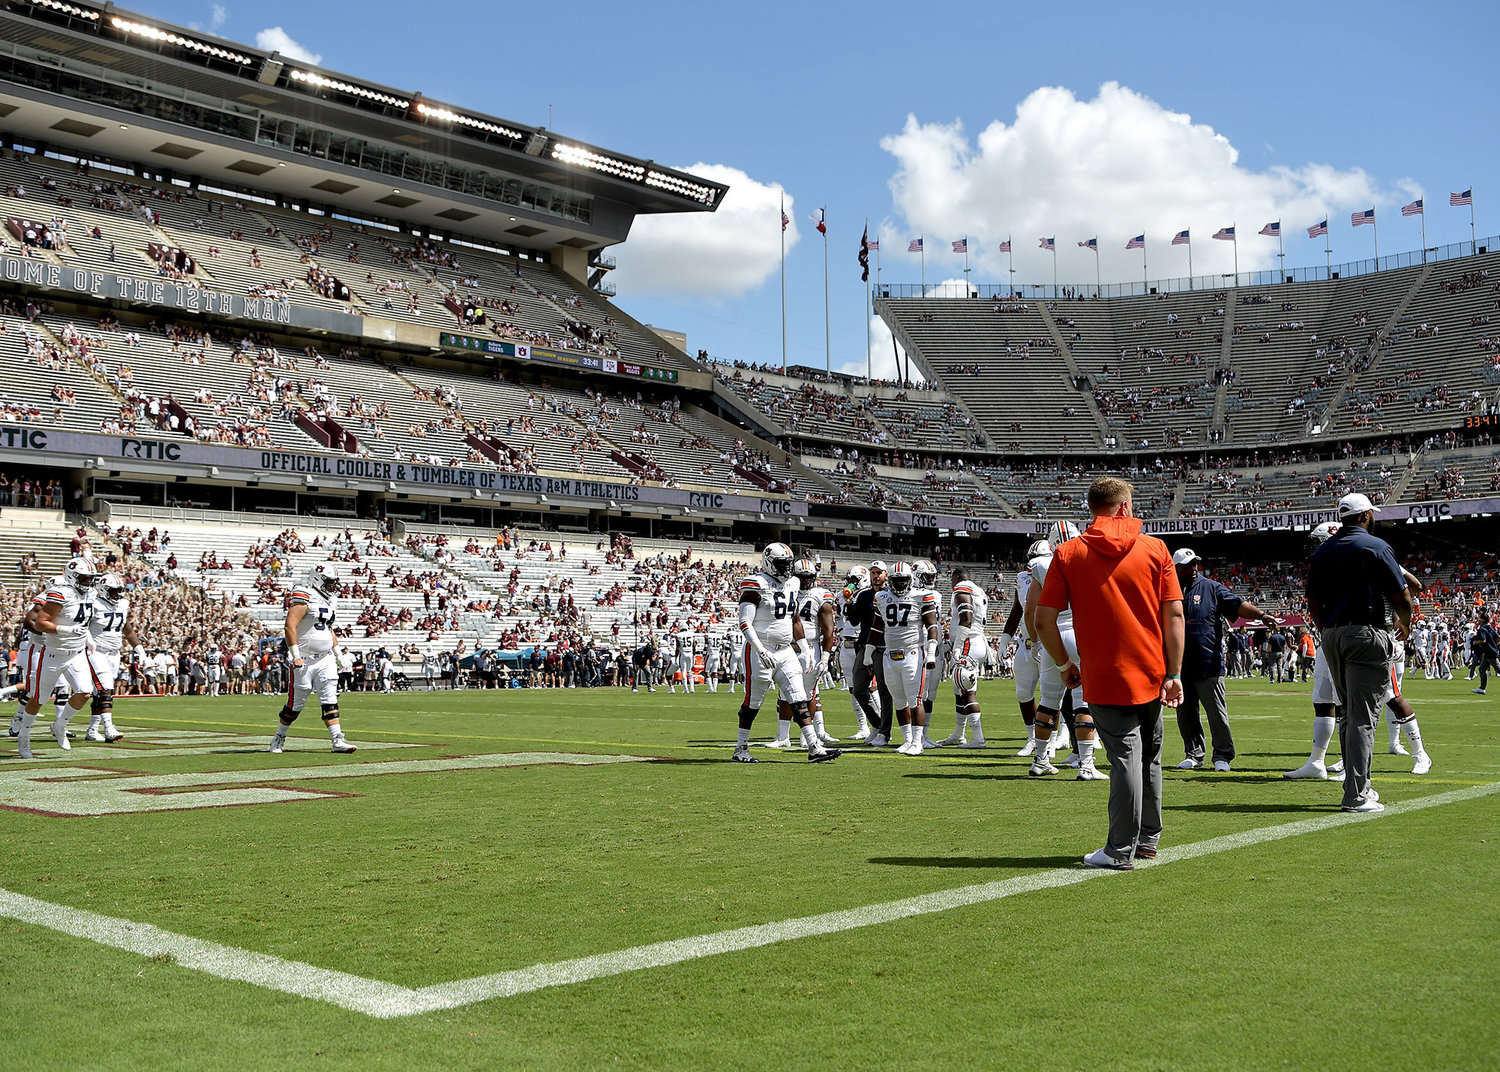 The Auburn Tigers warm up prior to the start of an NCAA football game between the Texas A&M Aggies and the Tigers Saturday, Sept. 21, 2019, at Kyle Field in College Station Texas. Auburn wins 28-20.